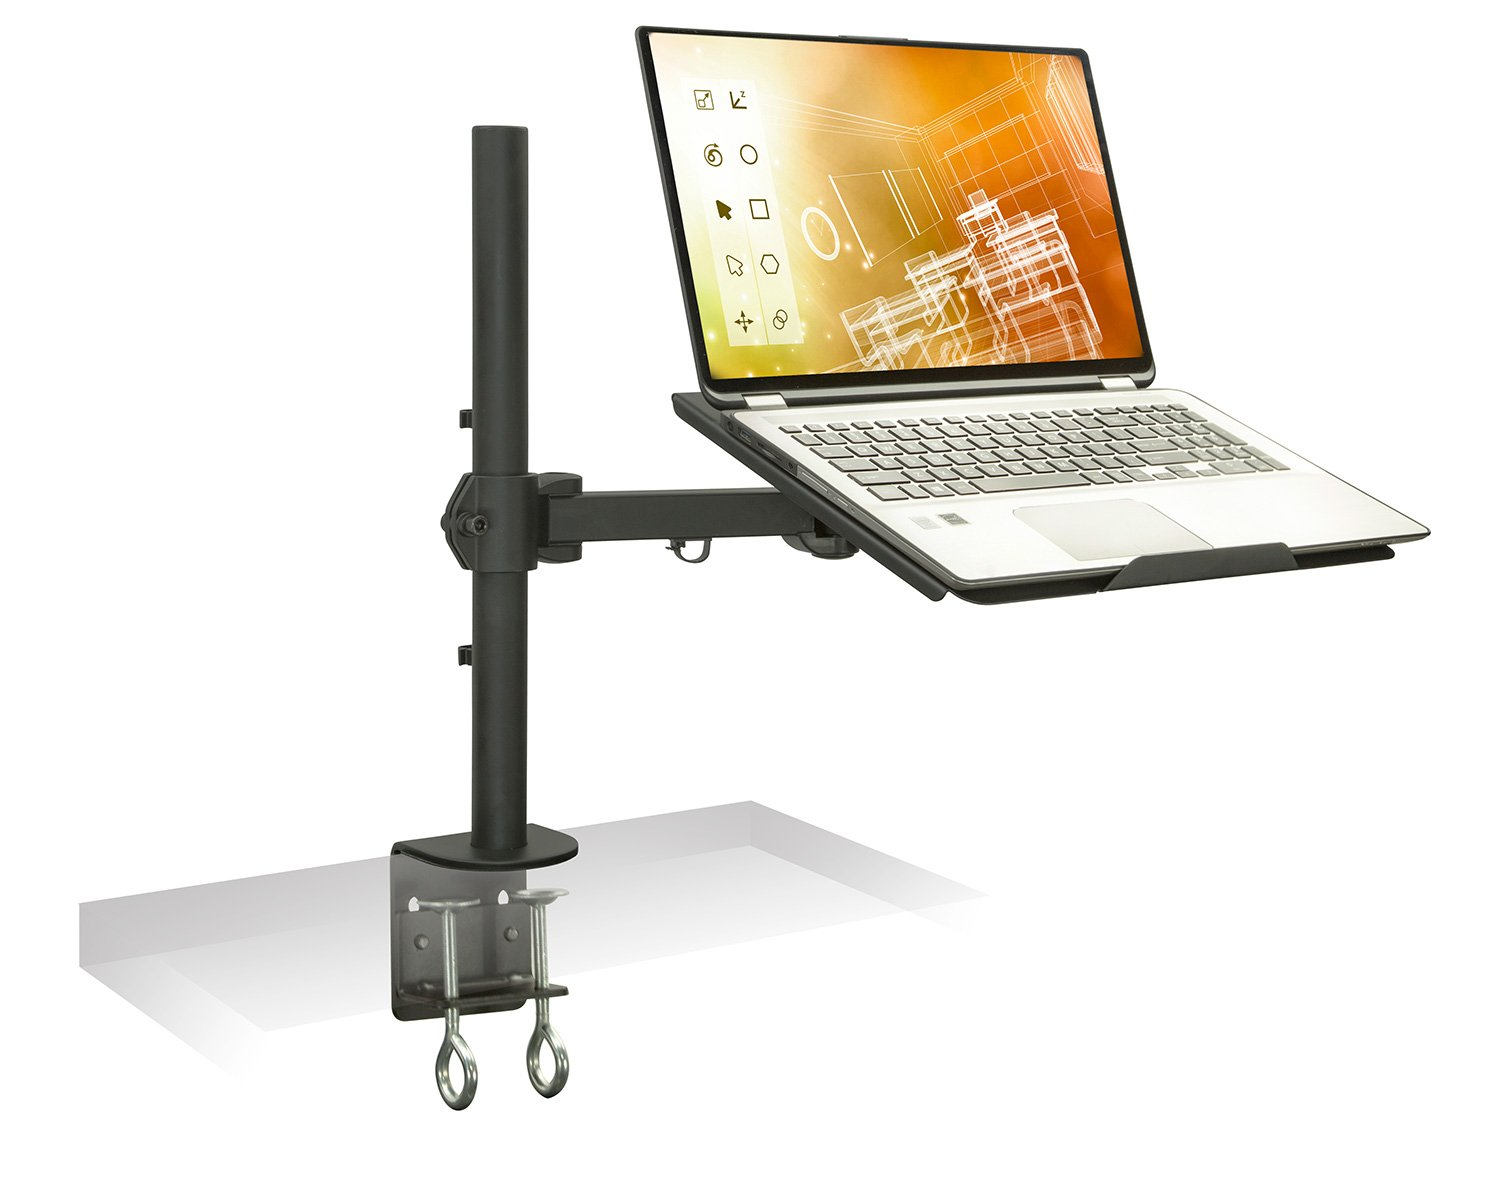 Image result for Laptop Arm Holder